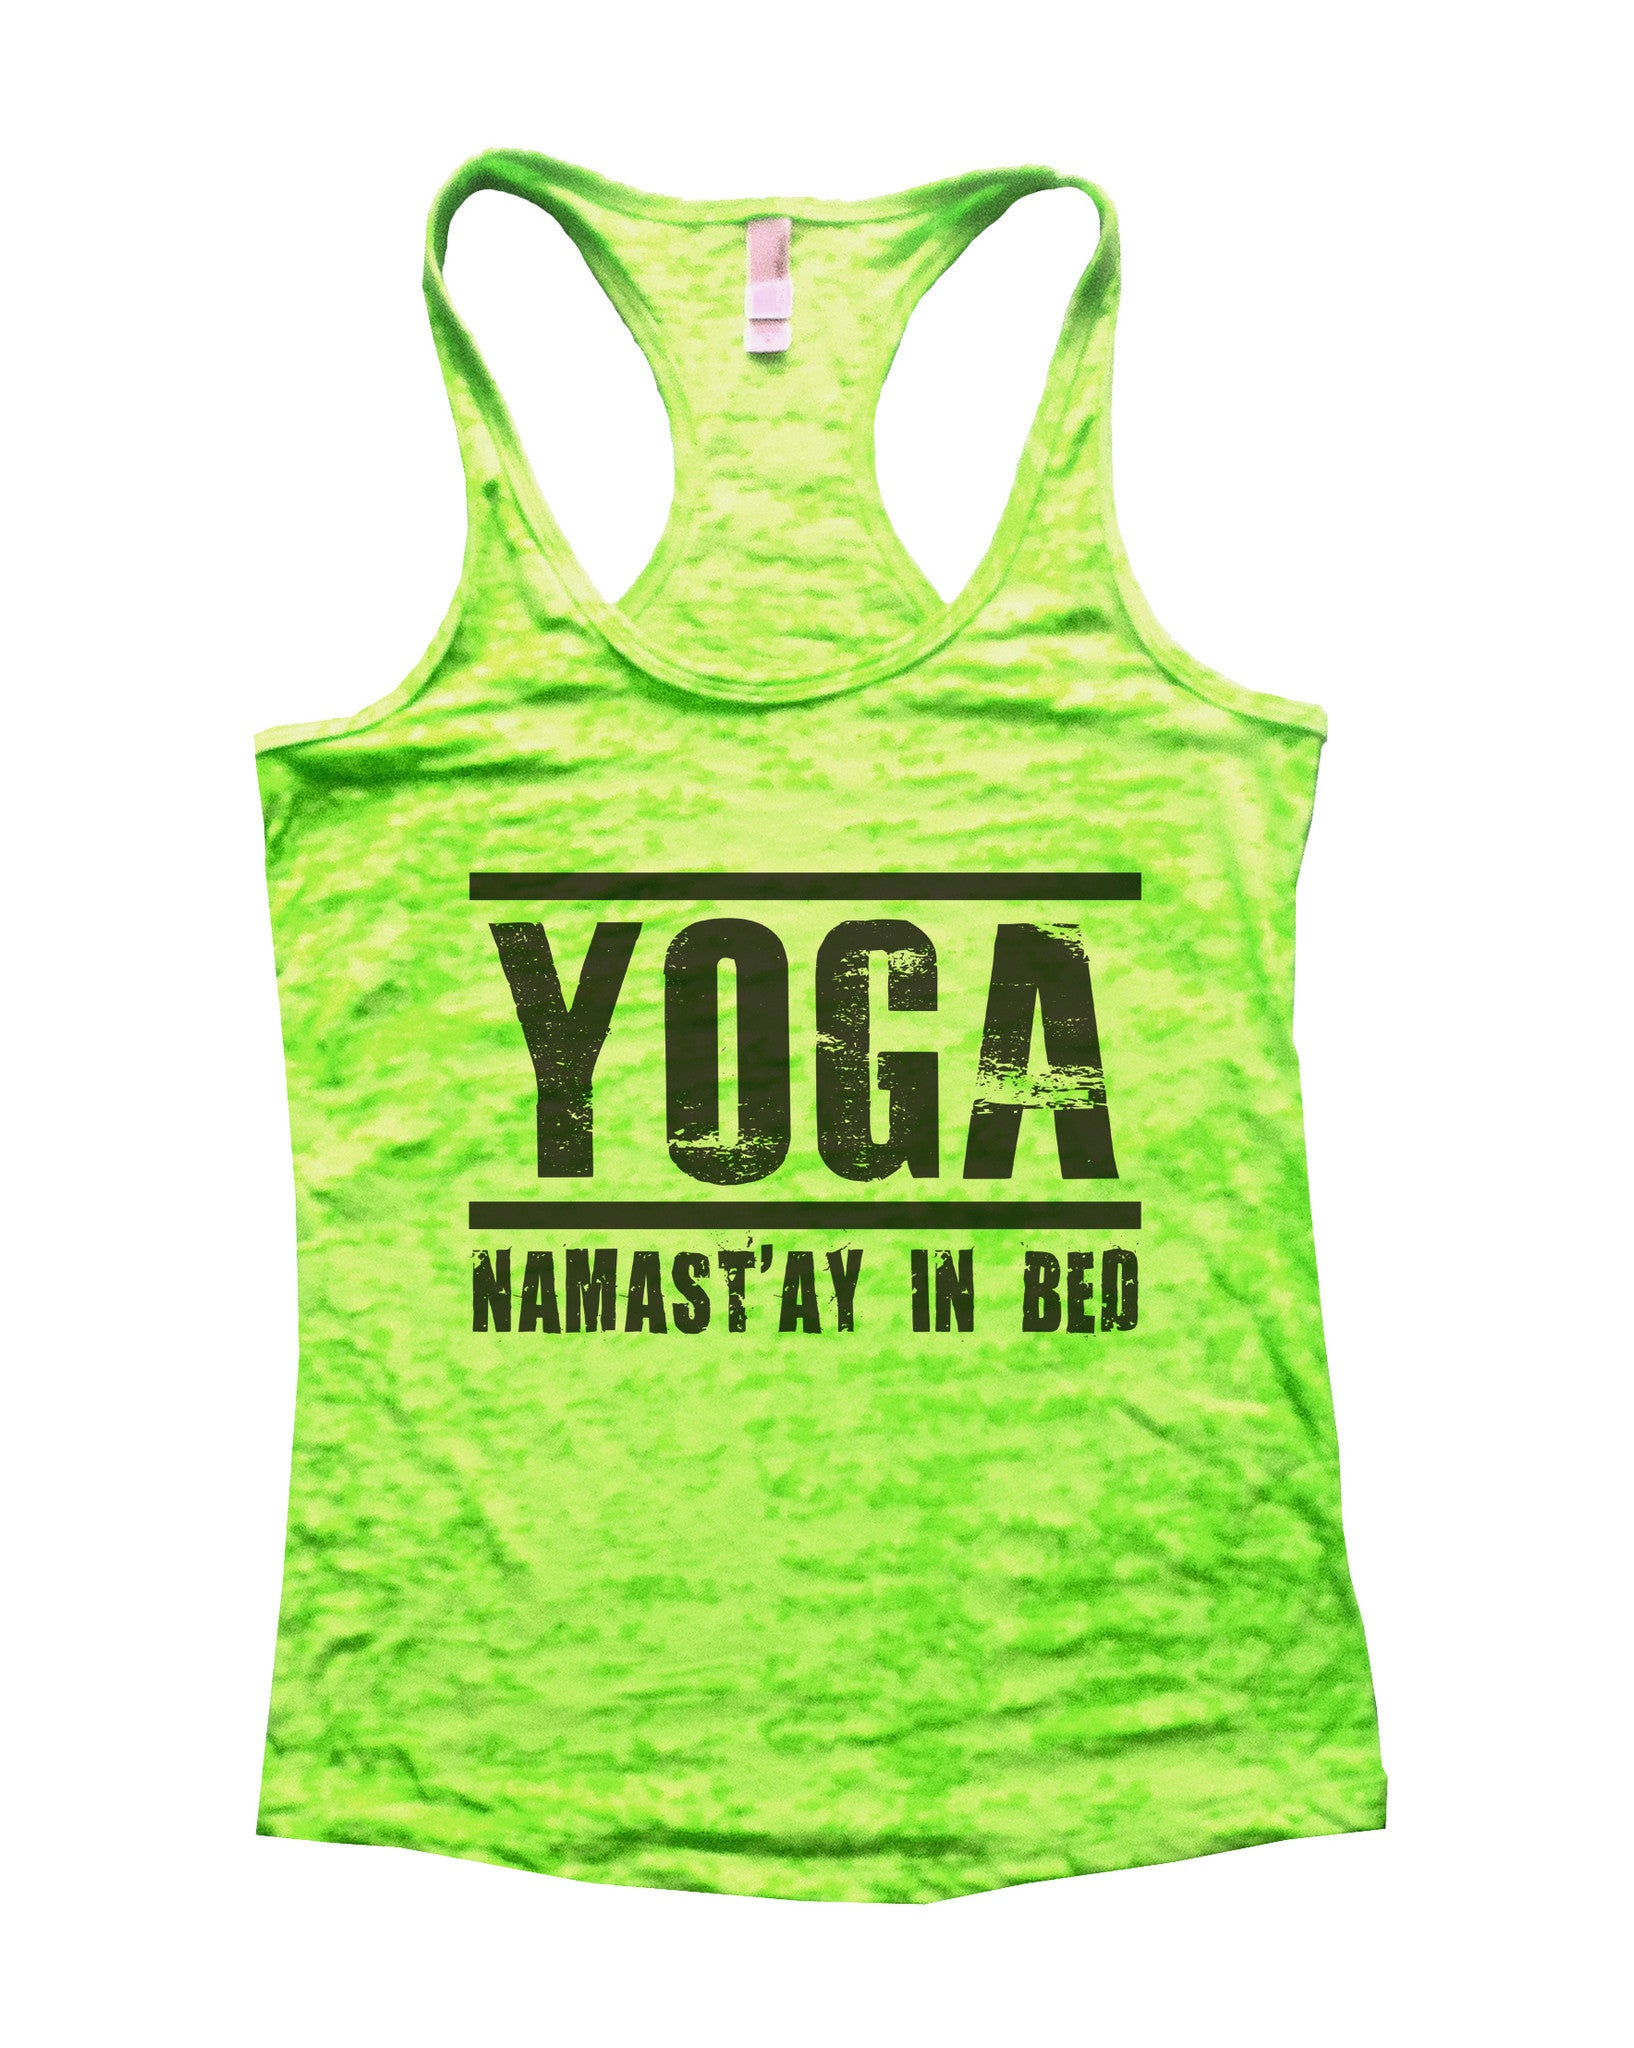 Yoga Namast'ay In Bed Burnout Tank Top By BurnoutTankTops.com - 649 - Funny Shirts Tank Tops Burnouts and Triblends  - 3